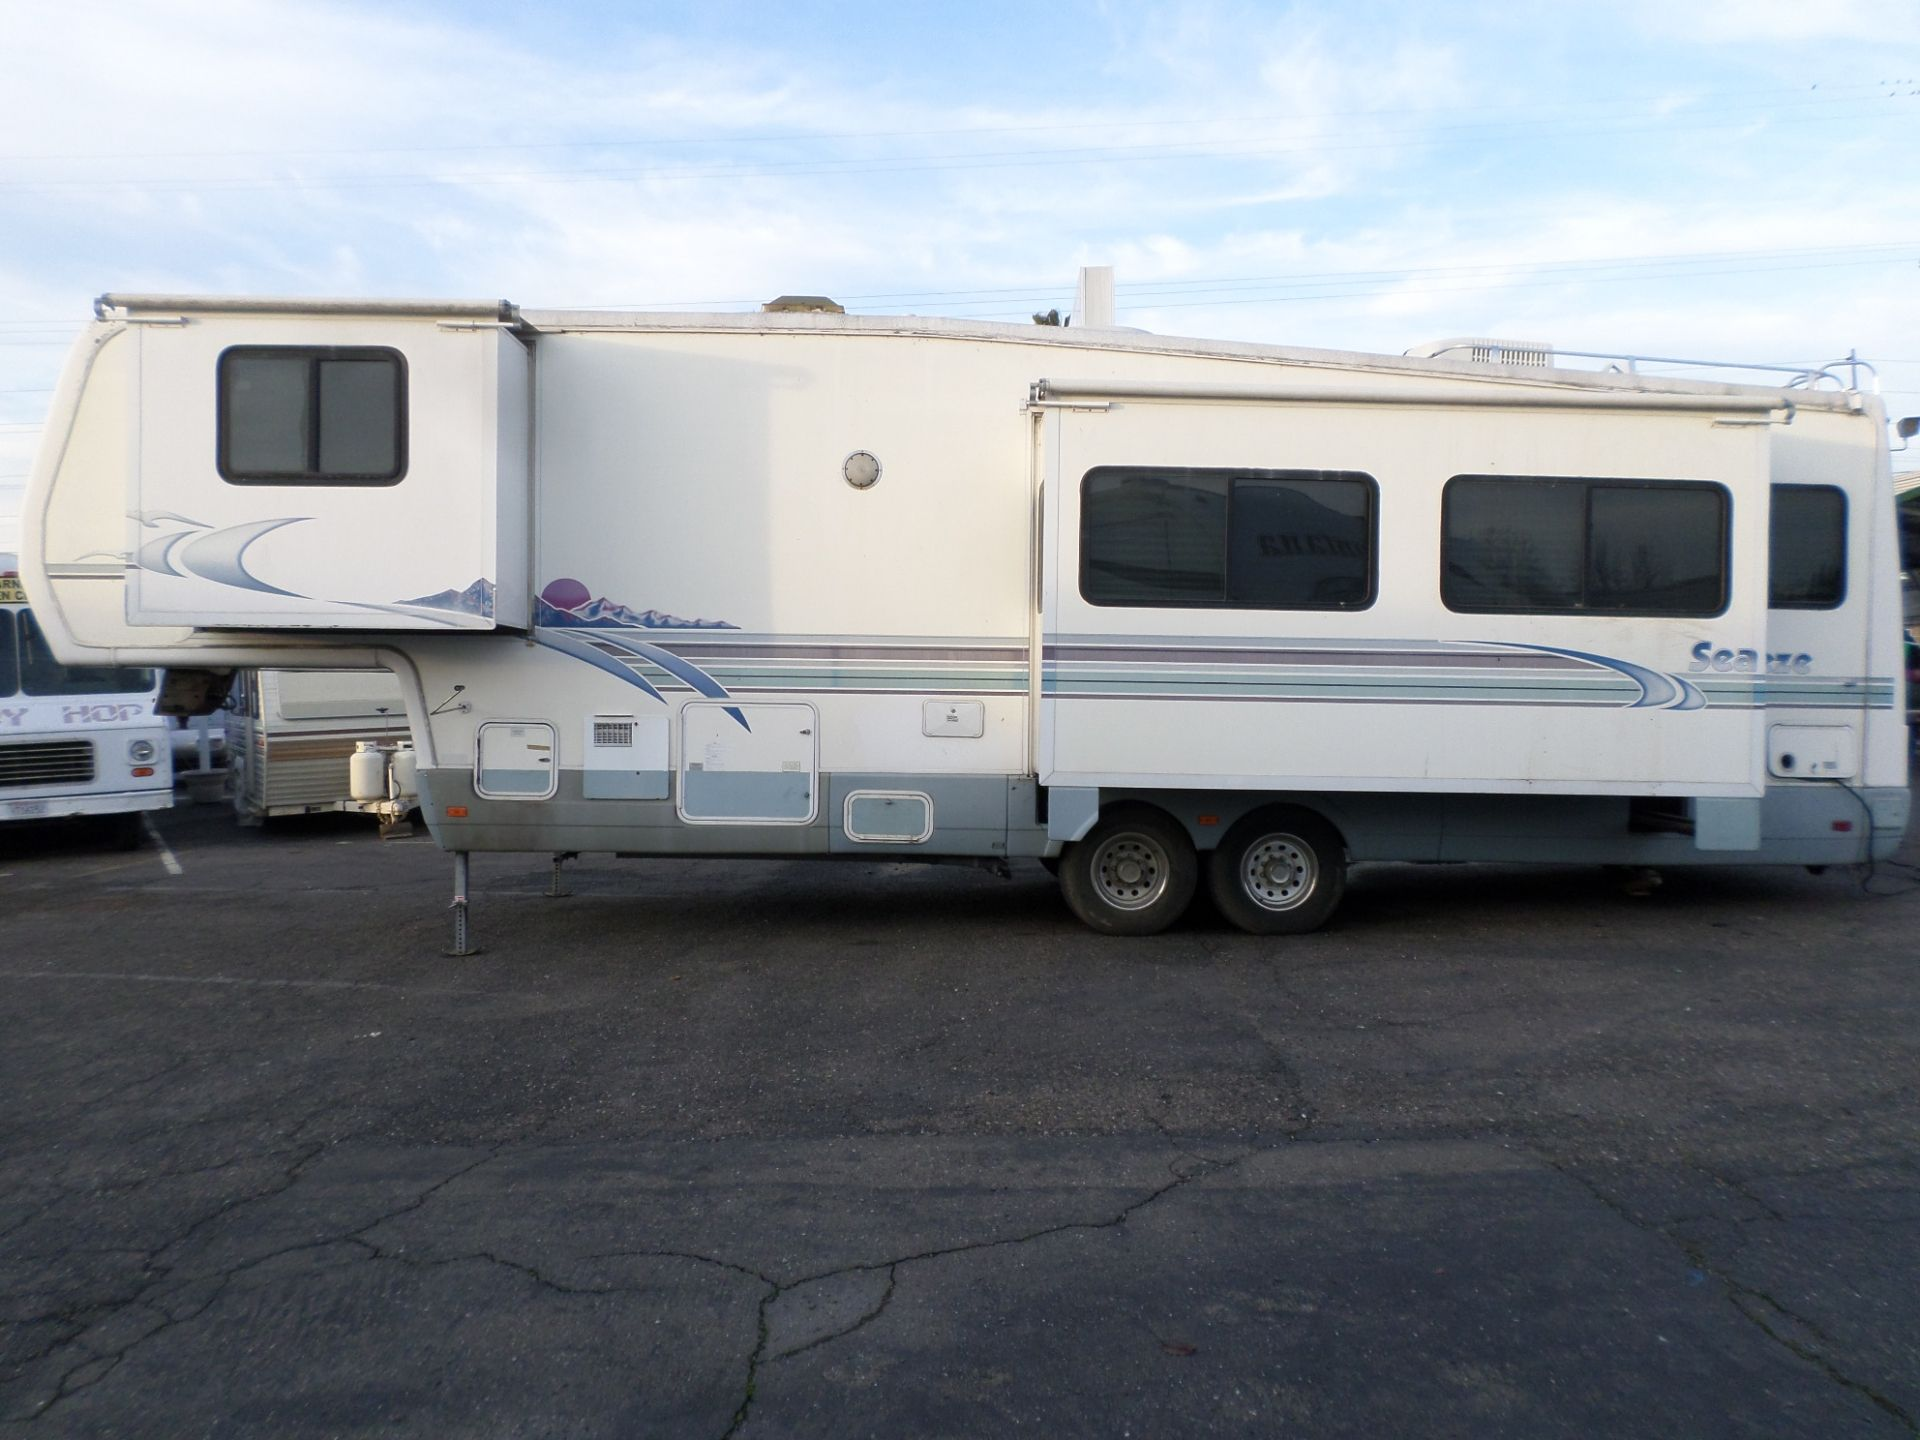 1999 National Sea Breeze 5th Wheel Rv For Sale 5th Wheels For